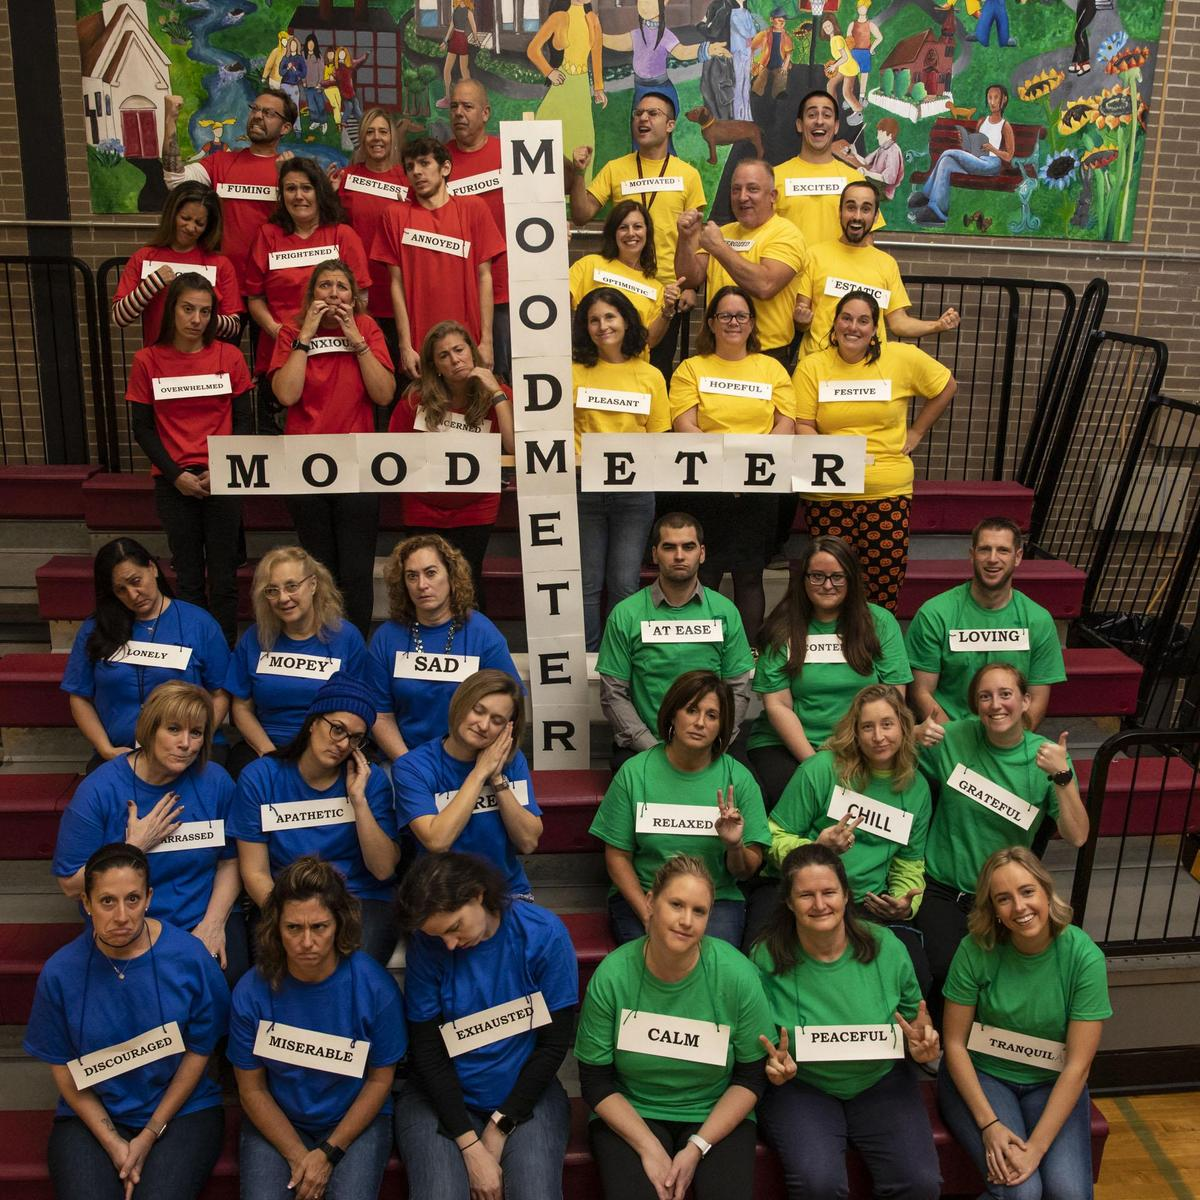 Hillside Intermediate School Staff Make a Human Mood Meter